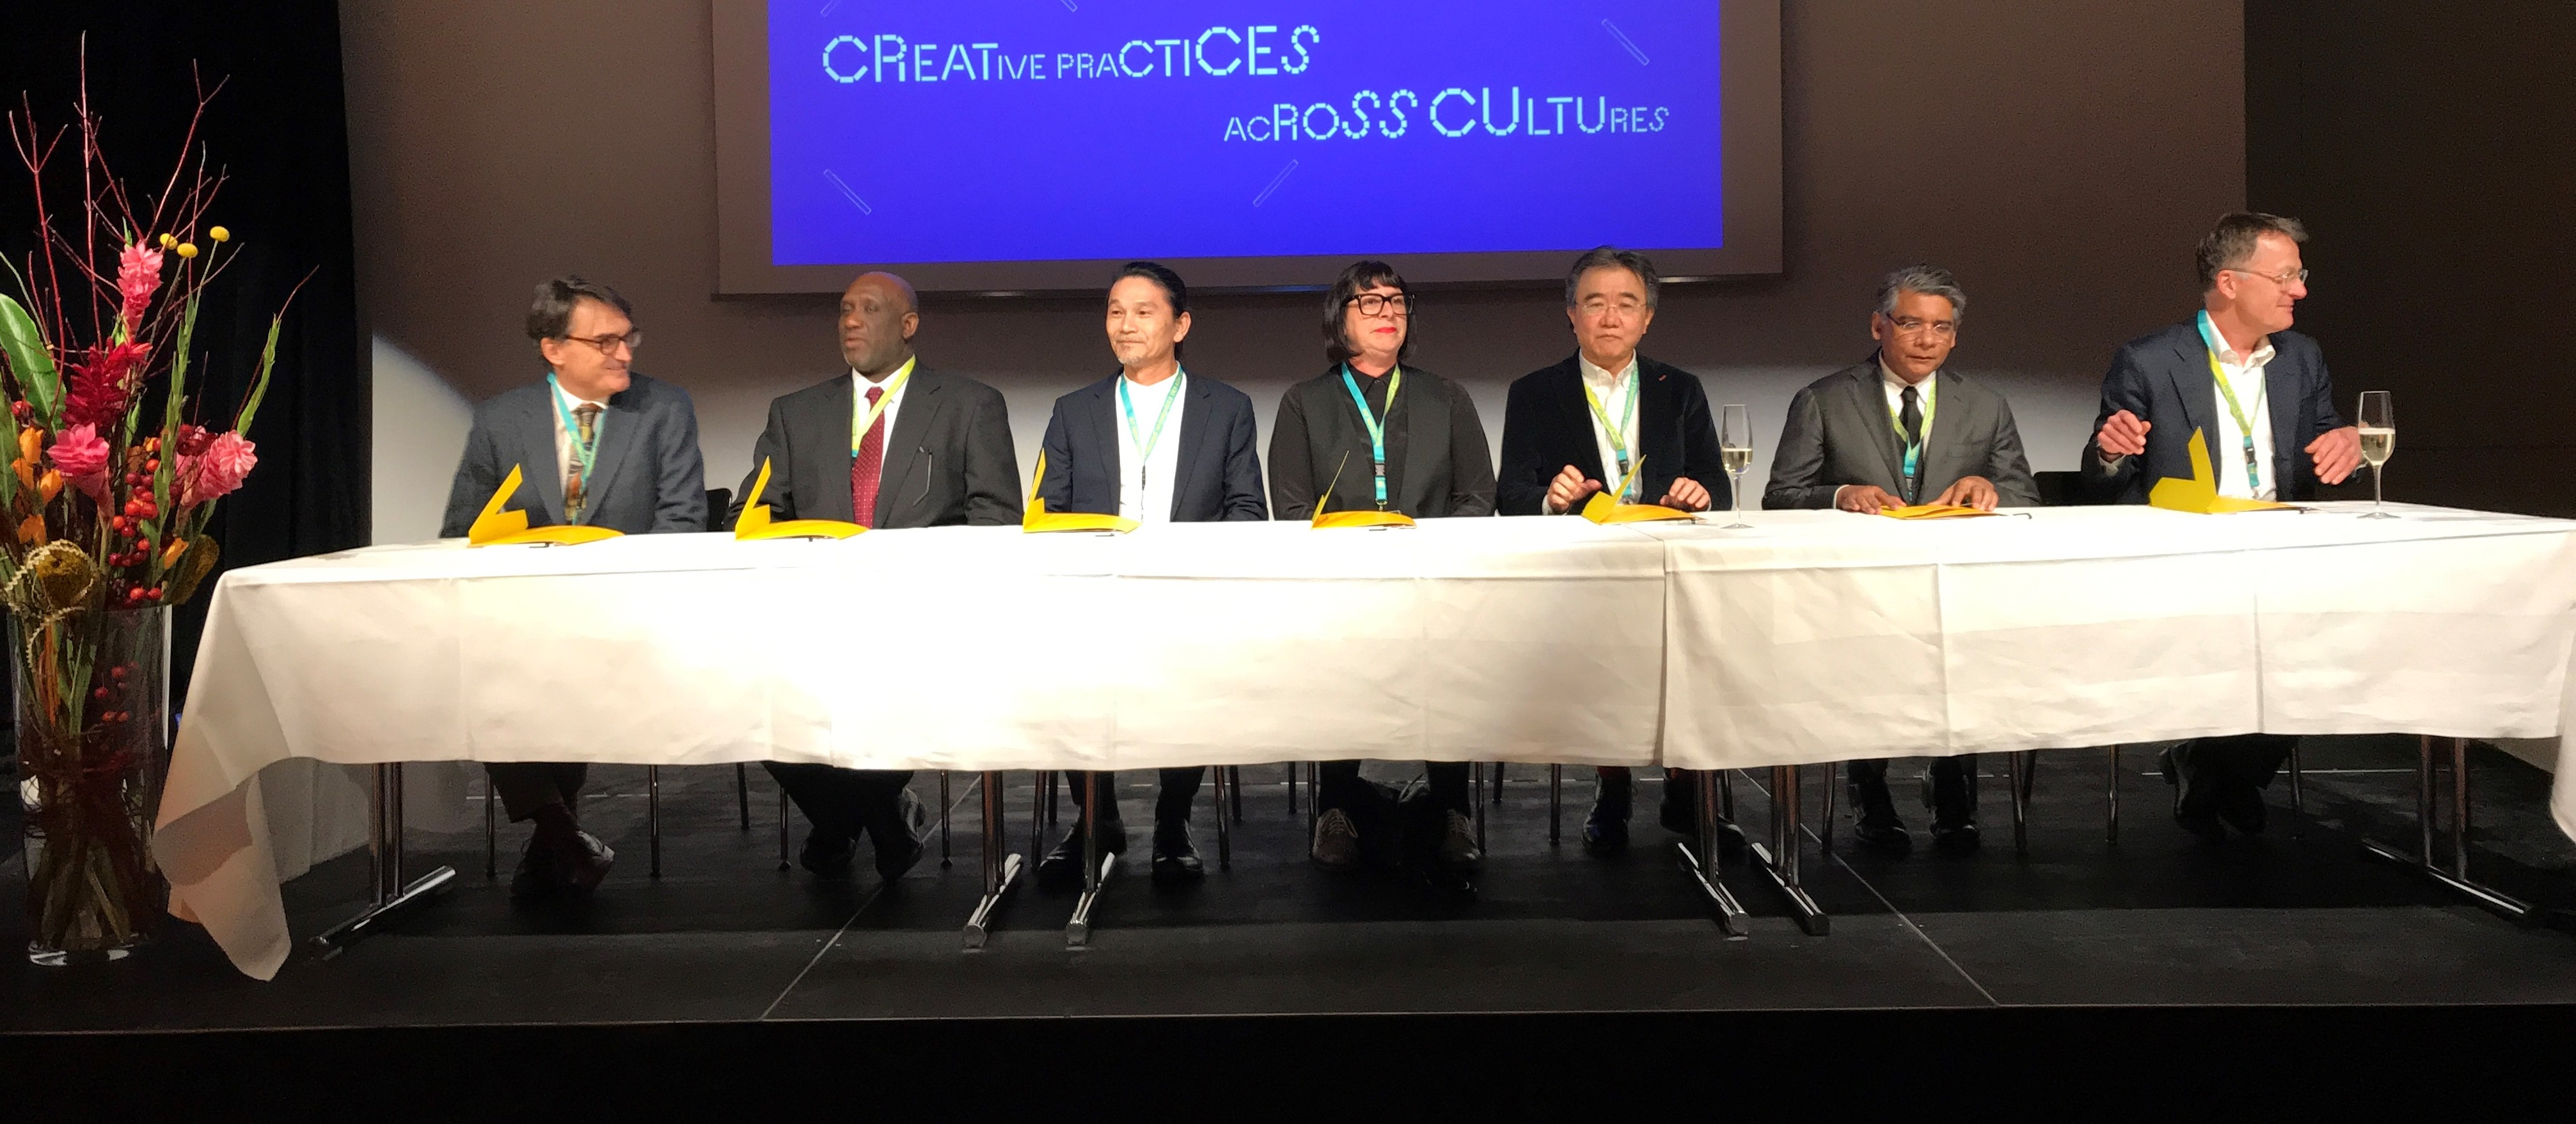 Panel of signatories at a table